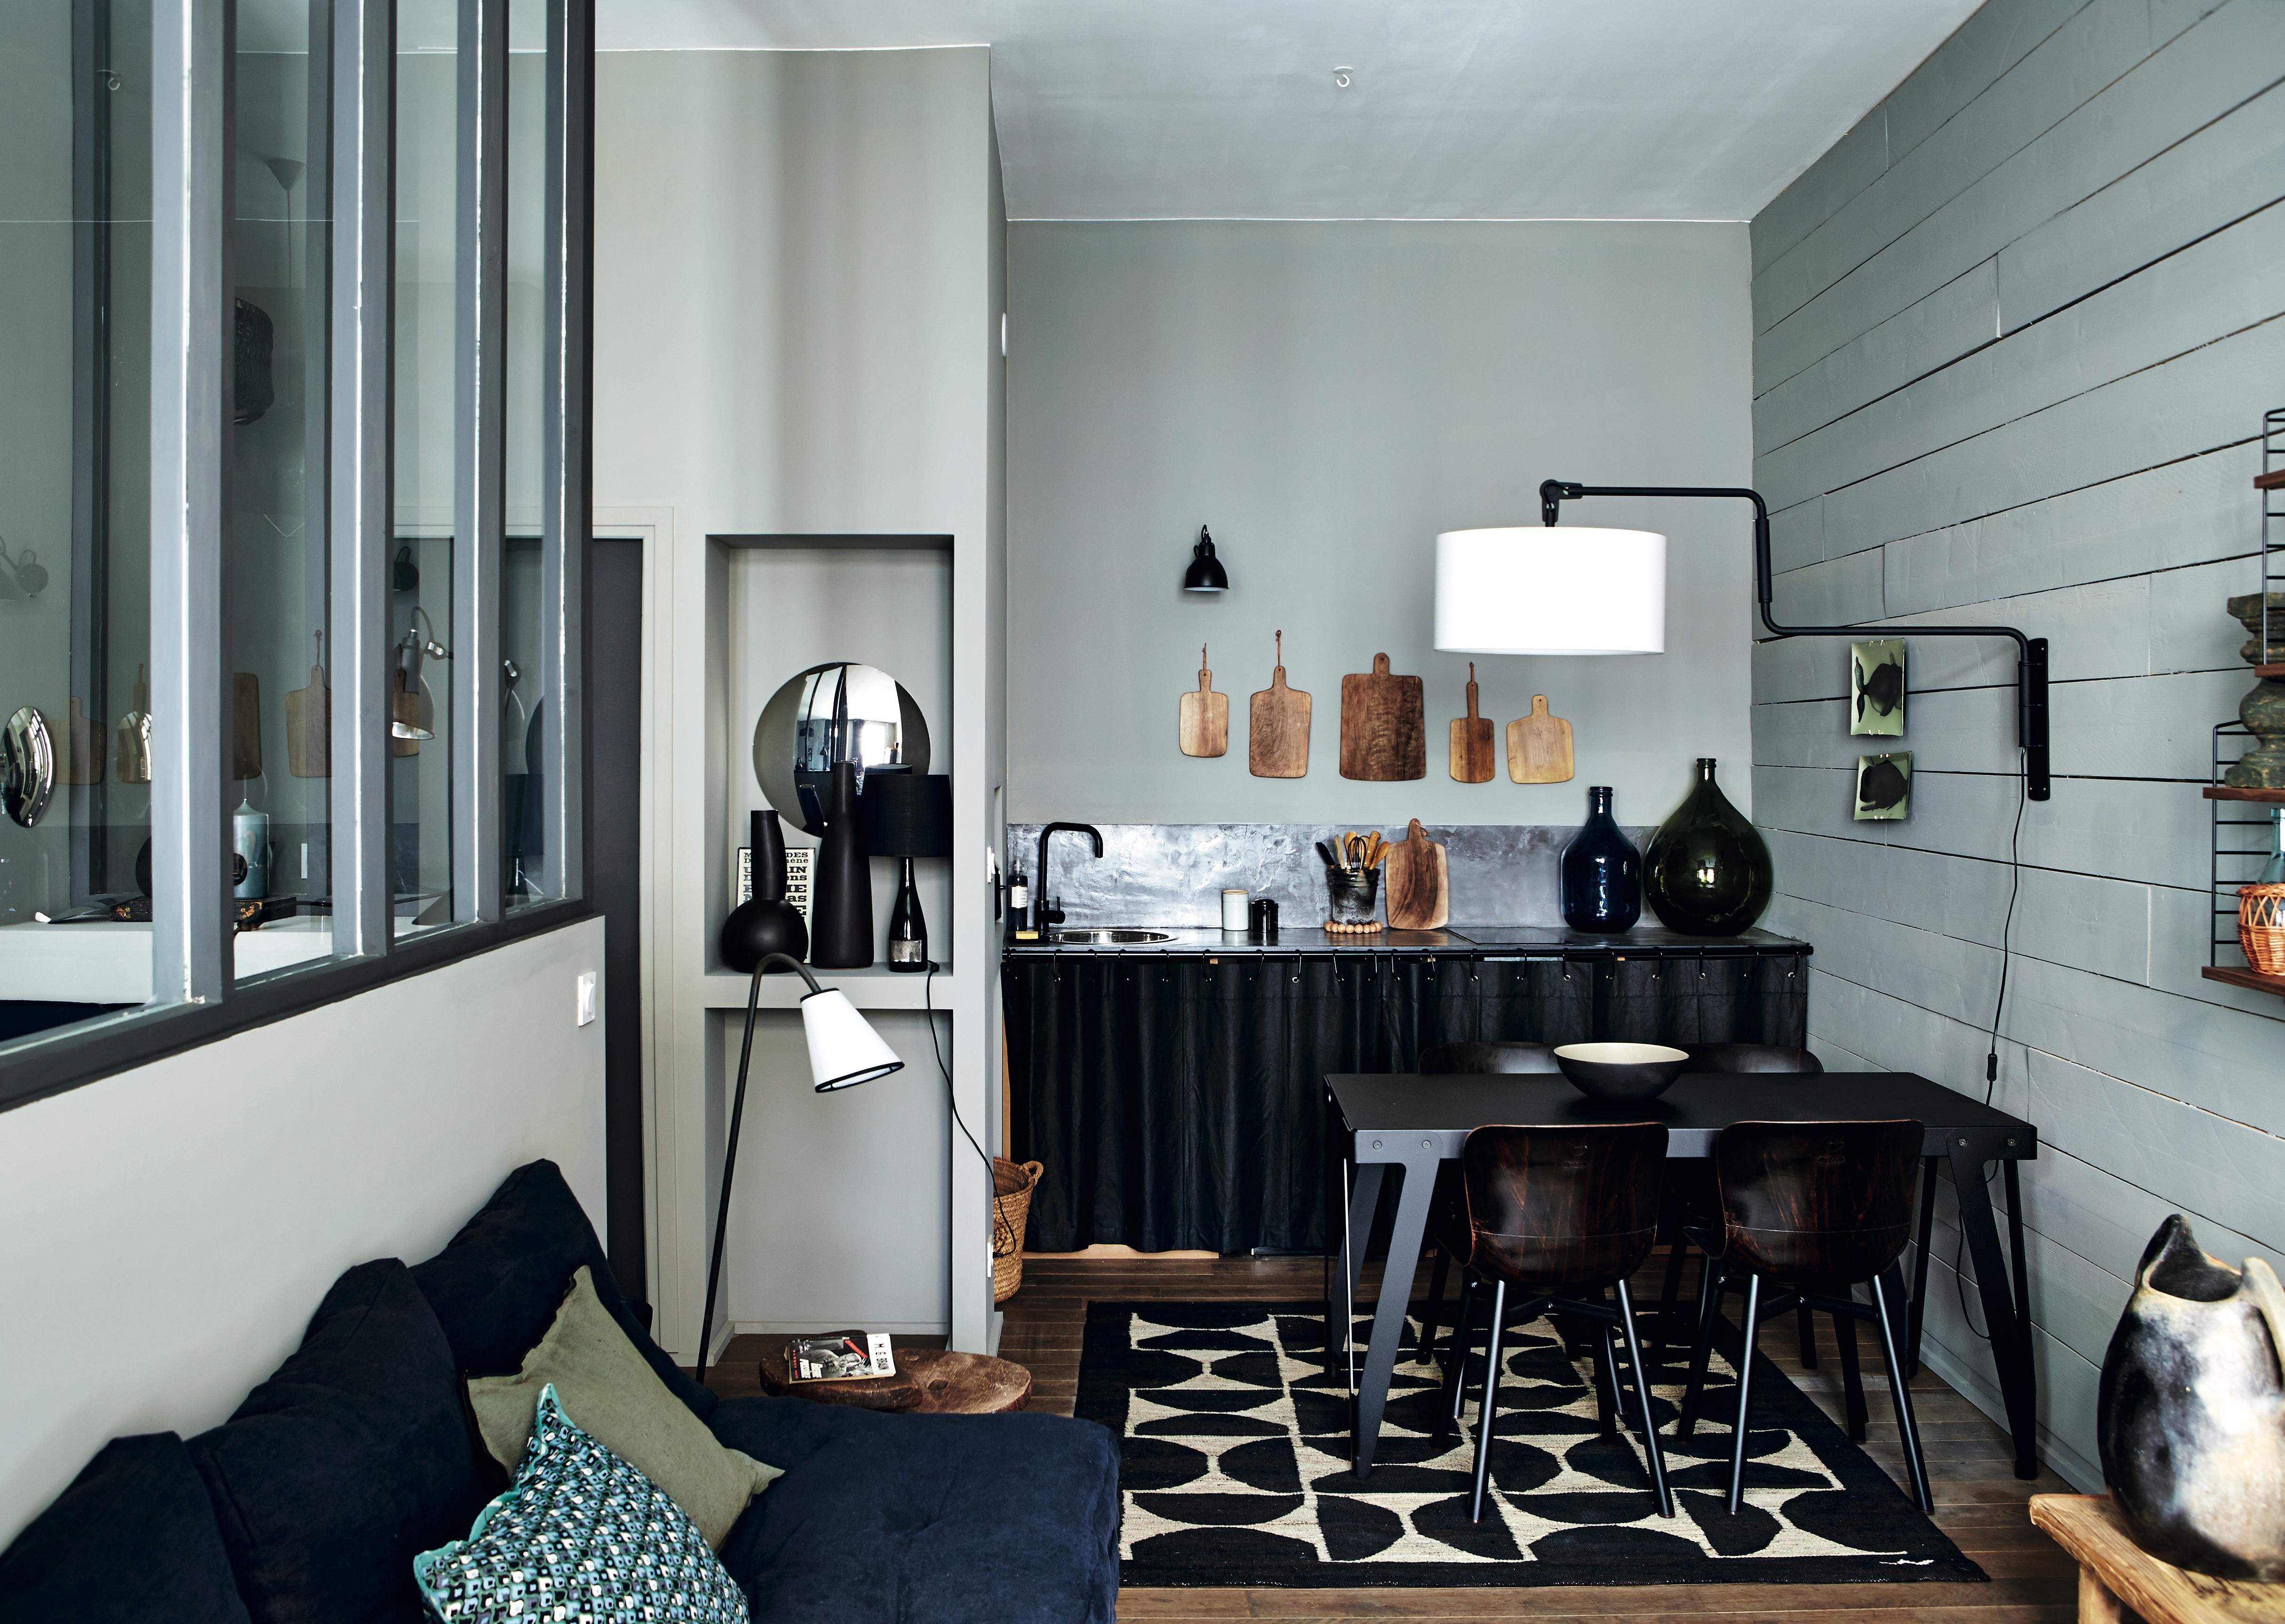 Pictures Of Grey And Black Houses House And Home Design